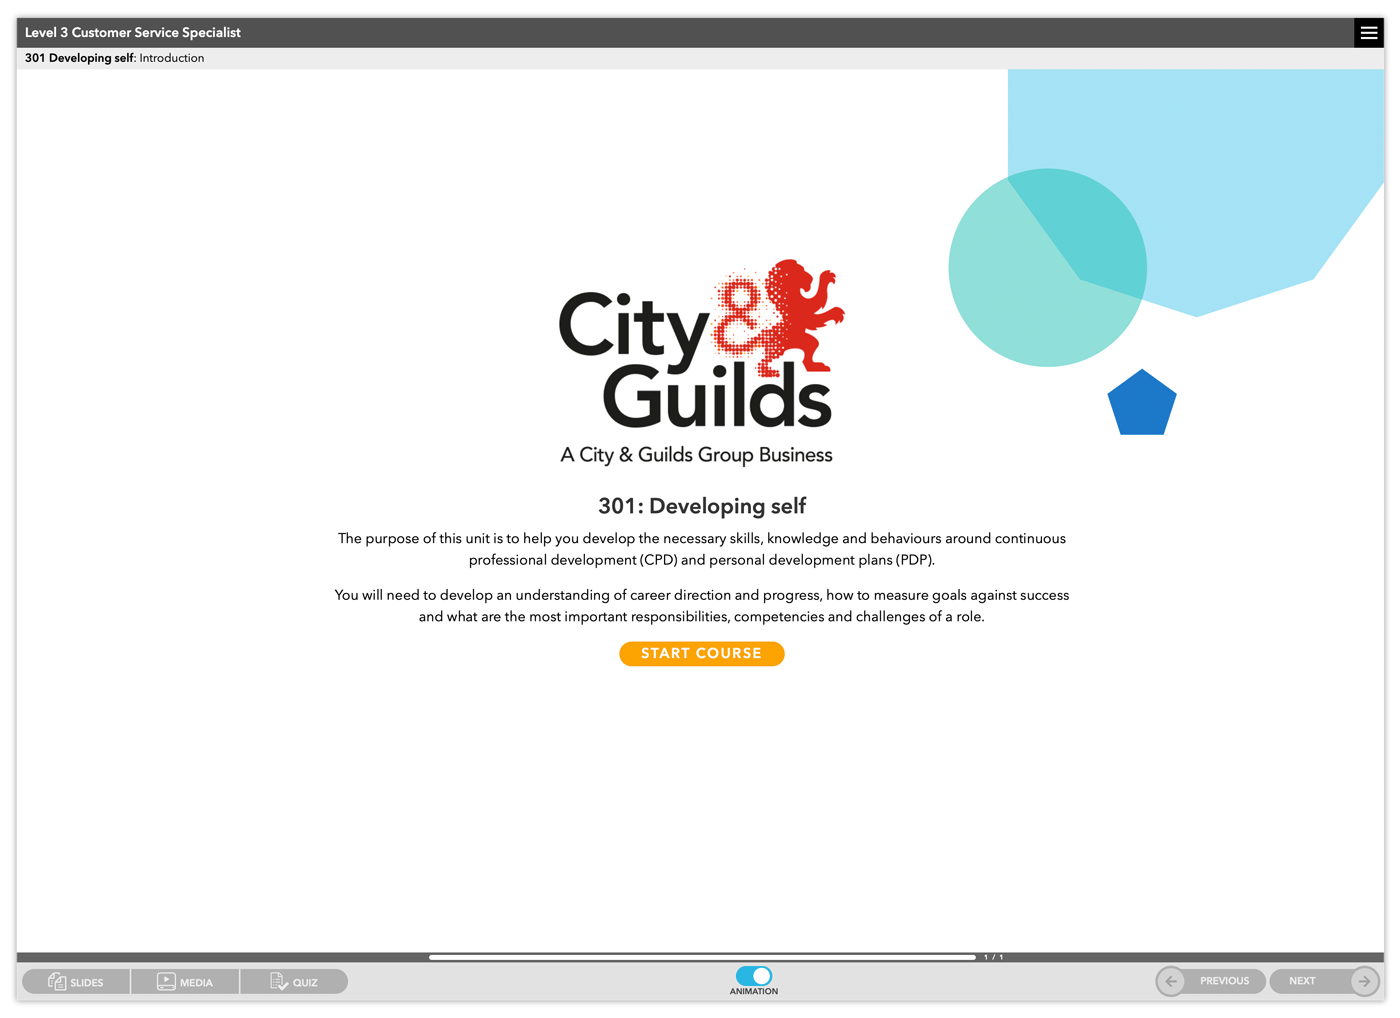 City and Guilds - Customer Service Specialist/3.png